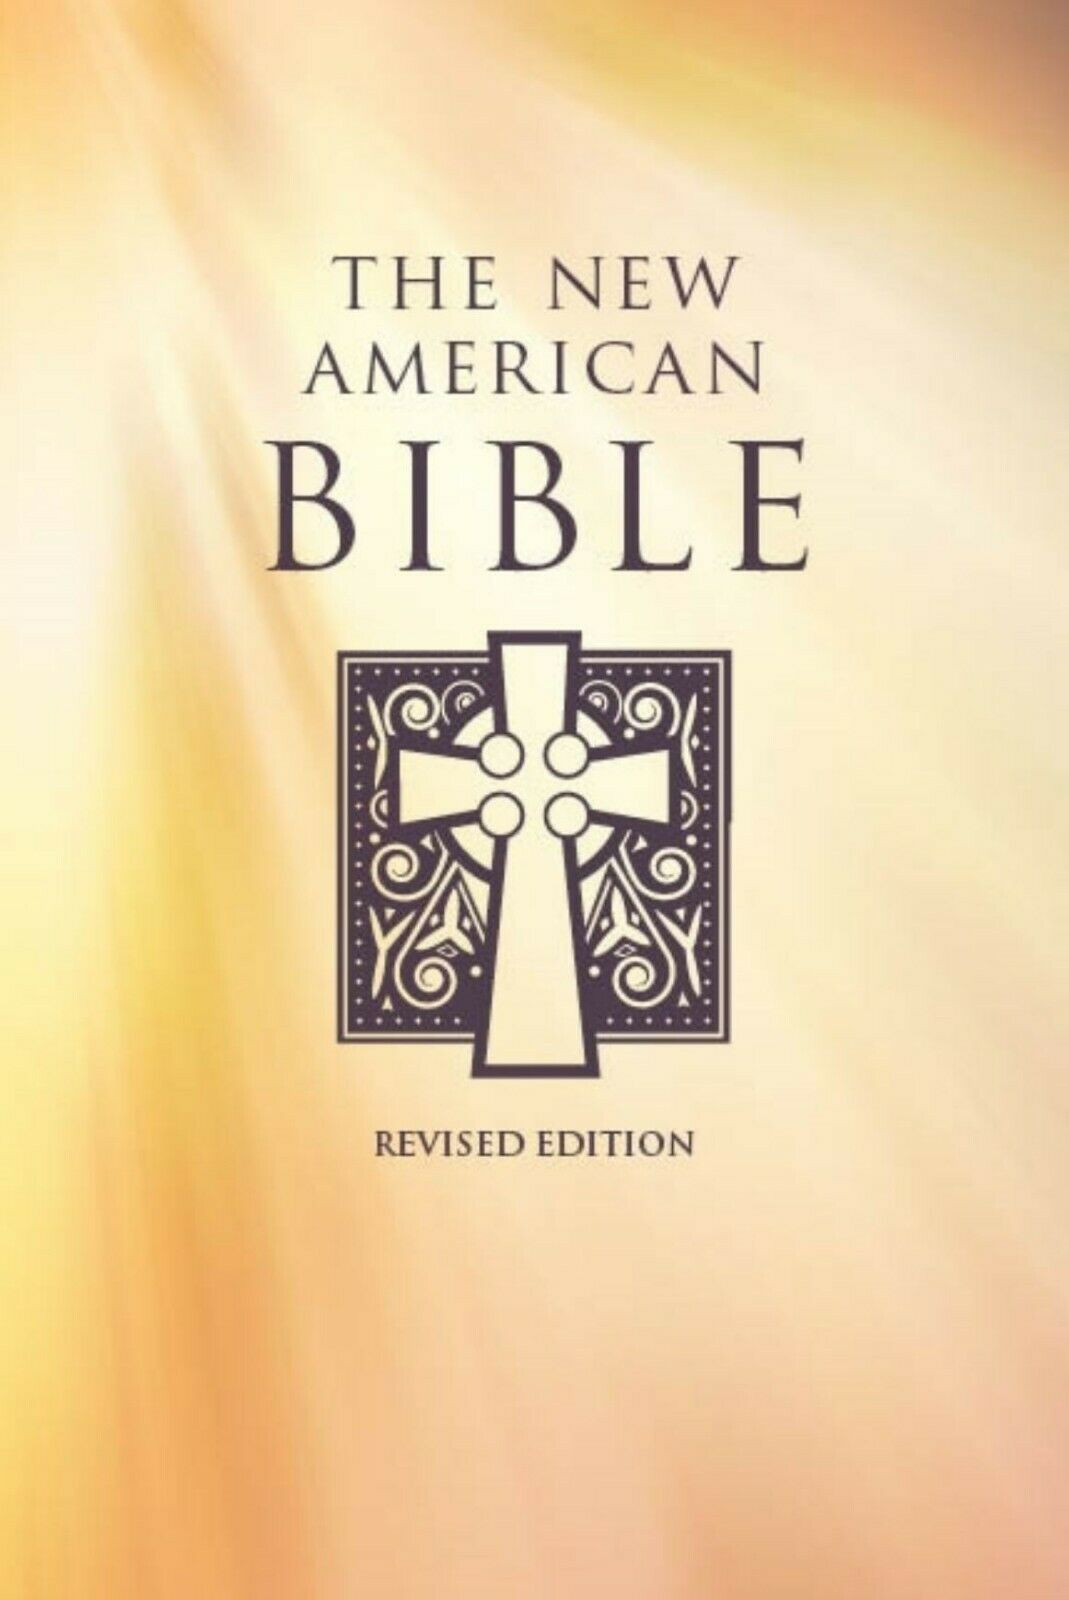 The New American Bible - Revised Edition - NEW! (Softcover, Paperck) NABRE USCCB